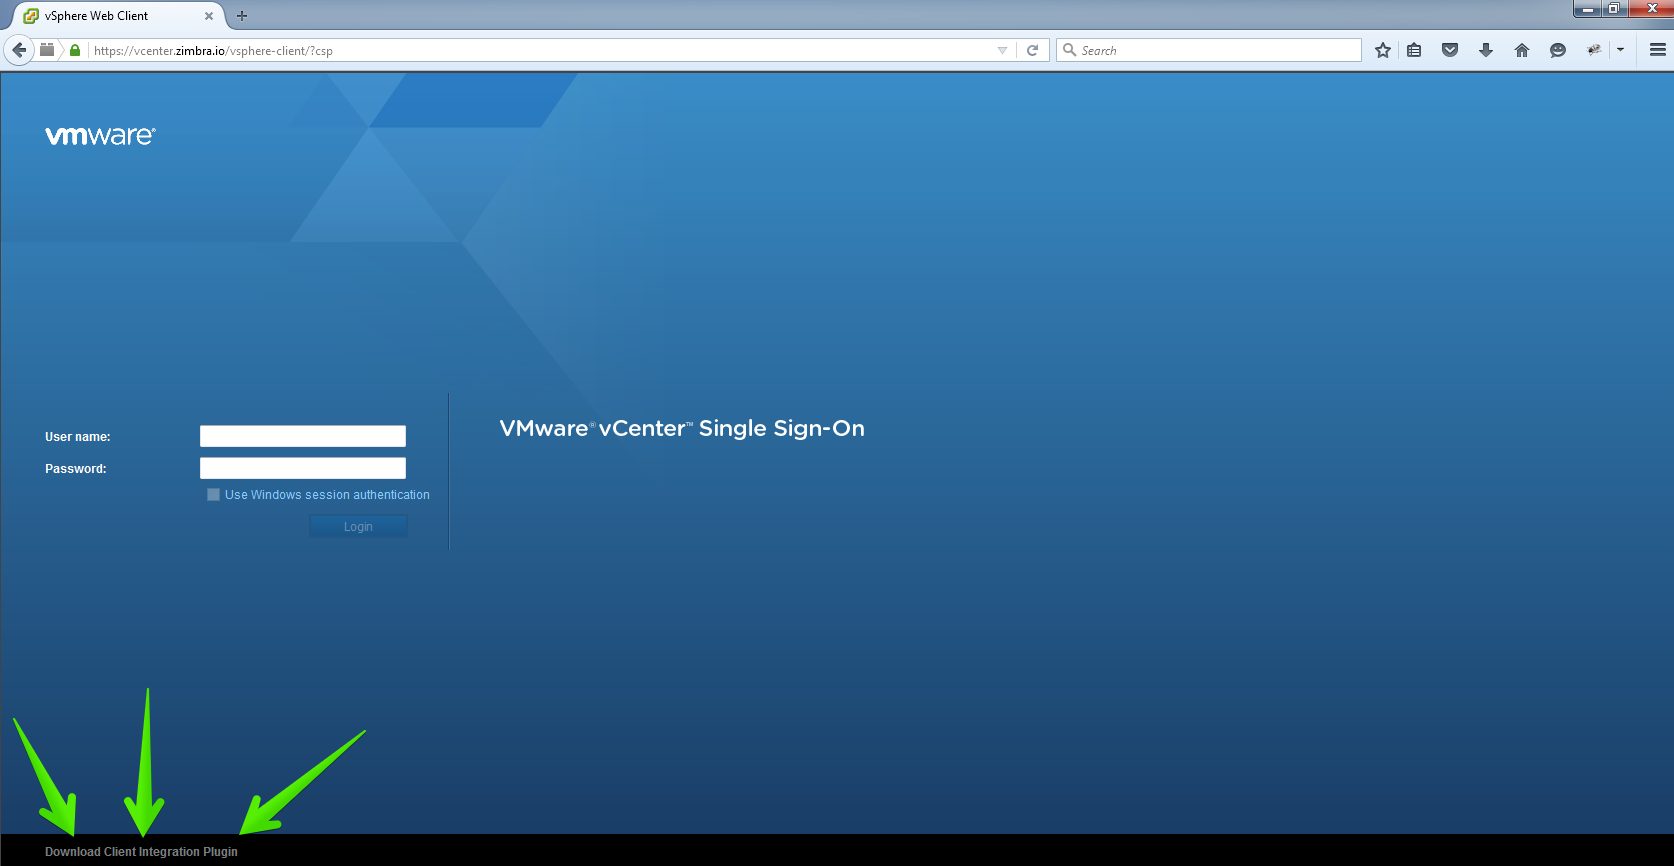 vmware client integration plugin mac download - Free